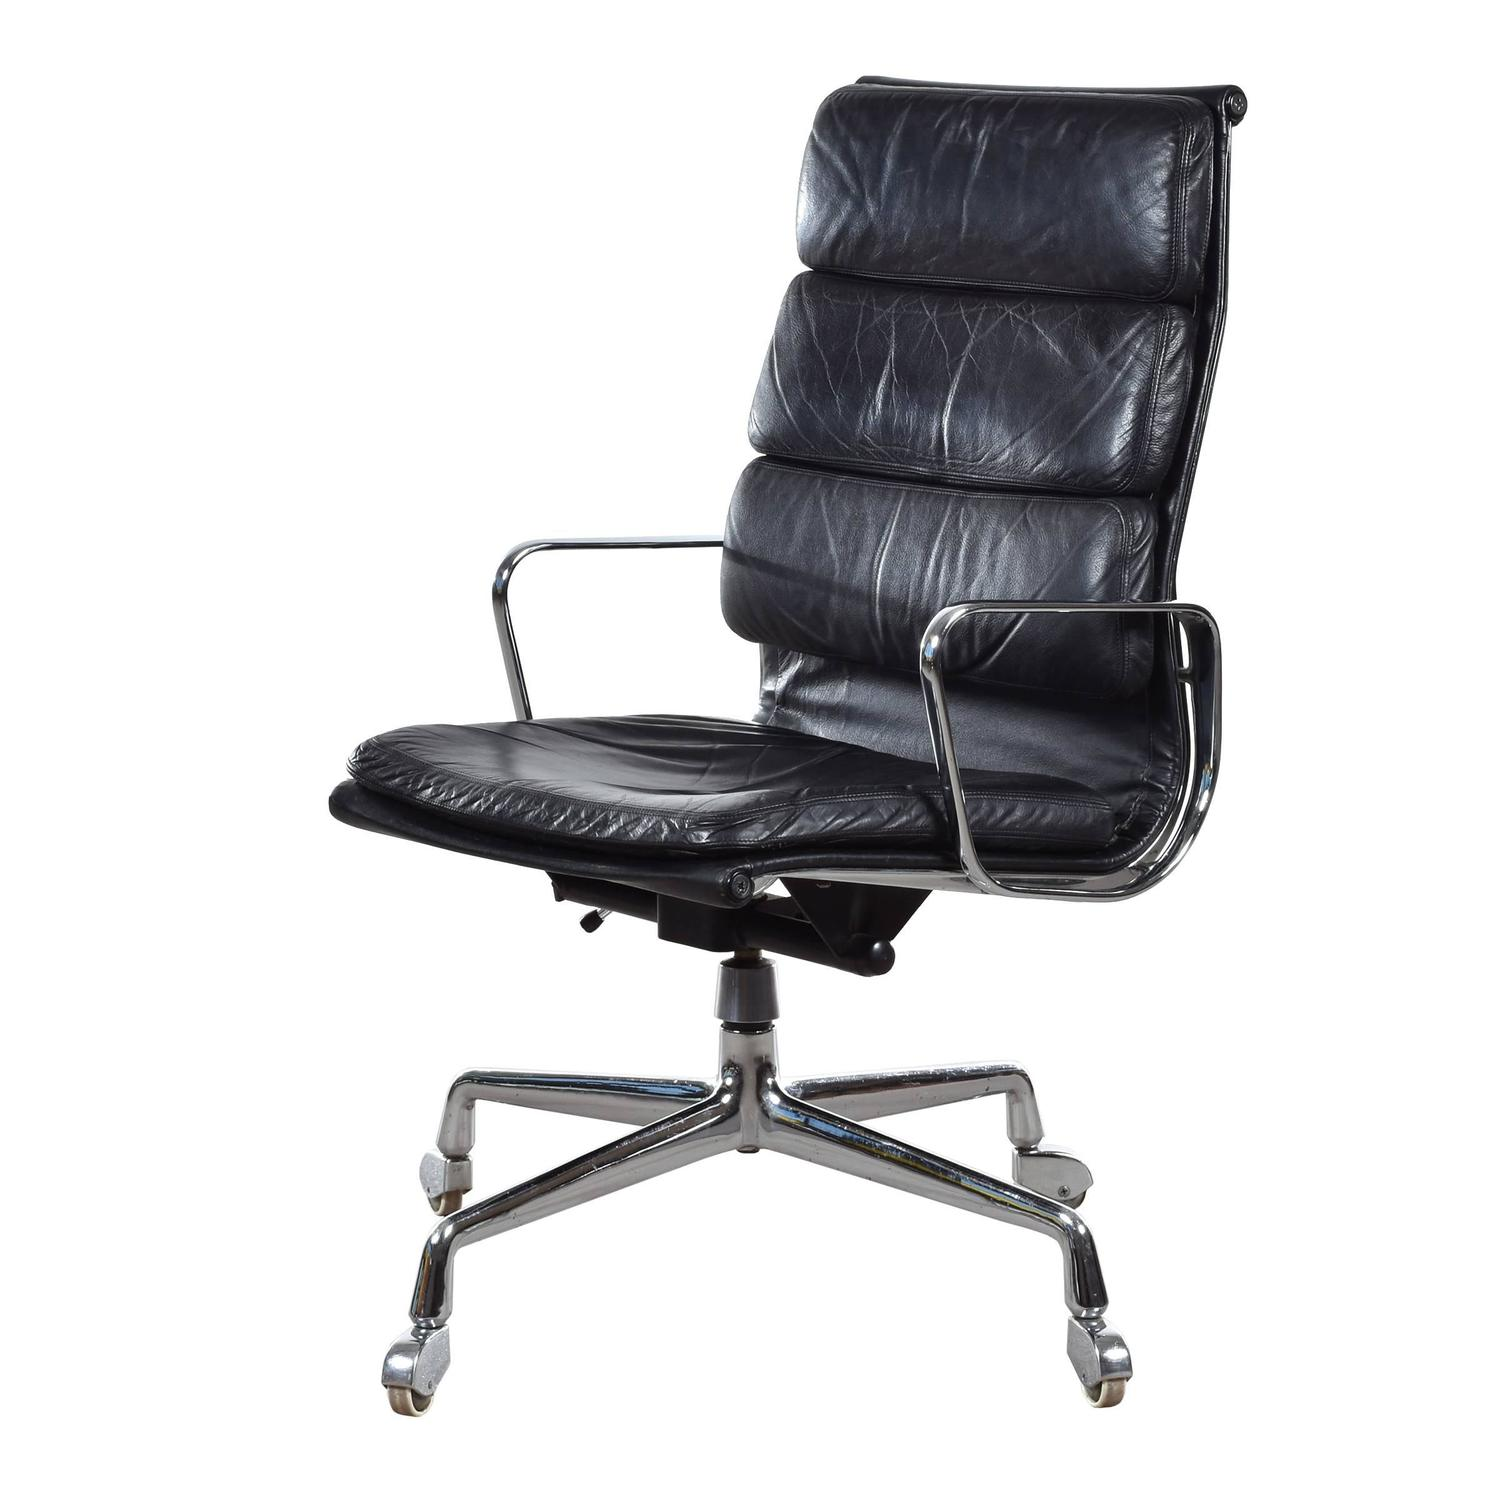 eames ea219 executive office chair for vitra fehlbaum at 1stdibs. Black Bedroom Furniture Sets. Home Design Ideas